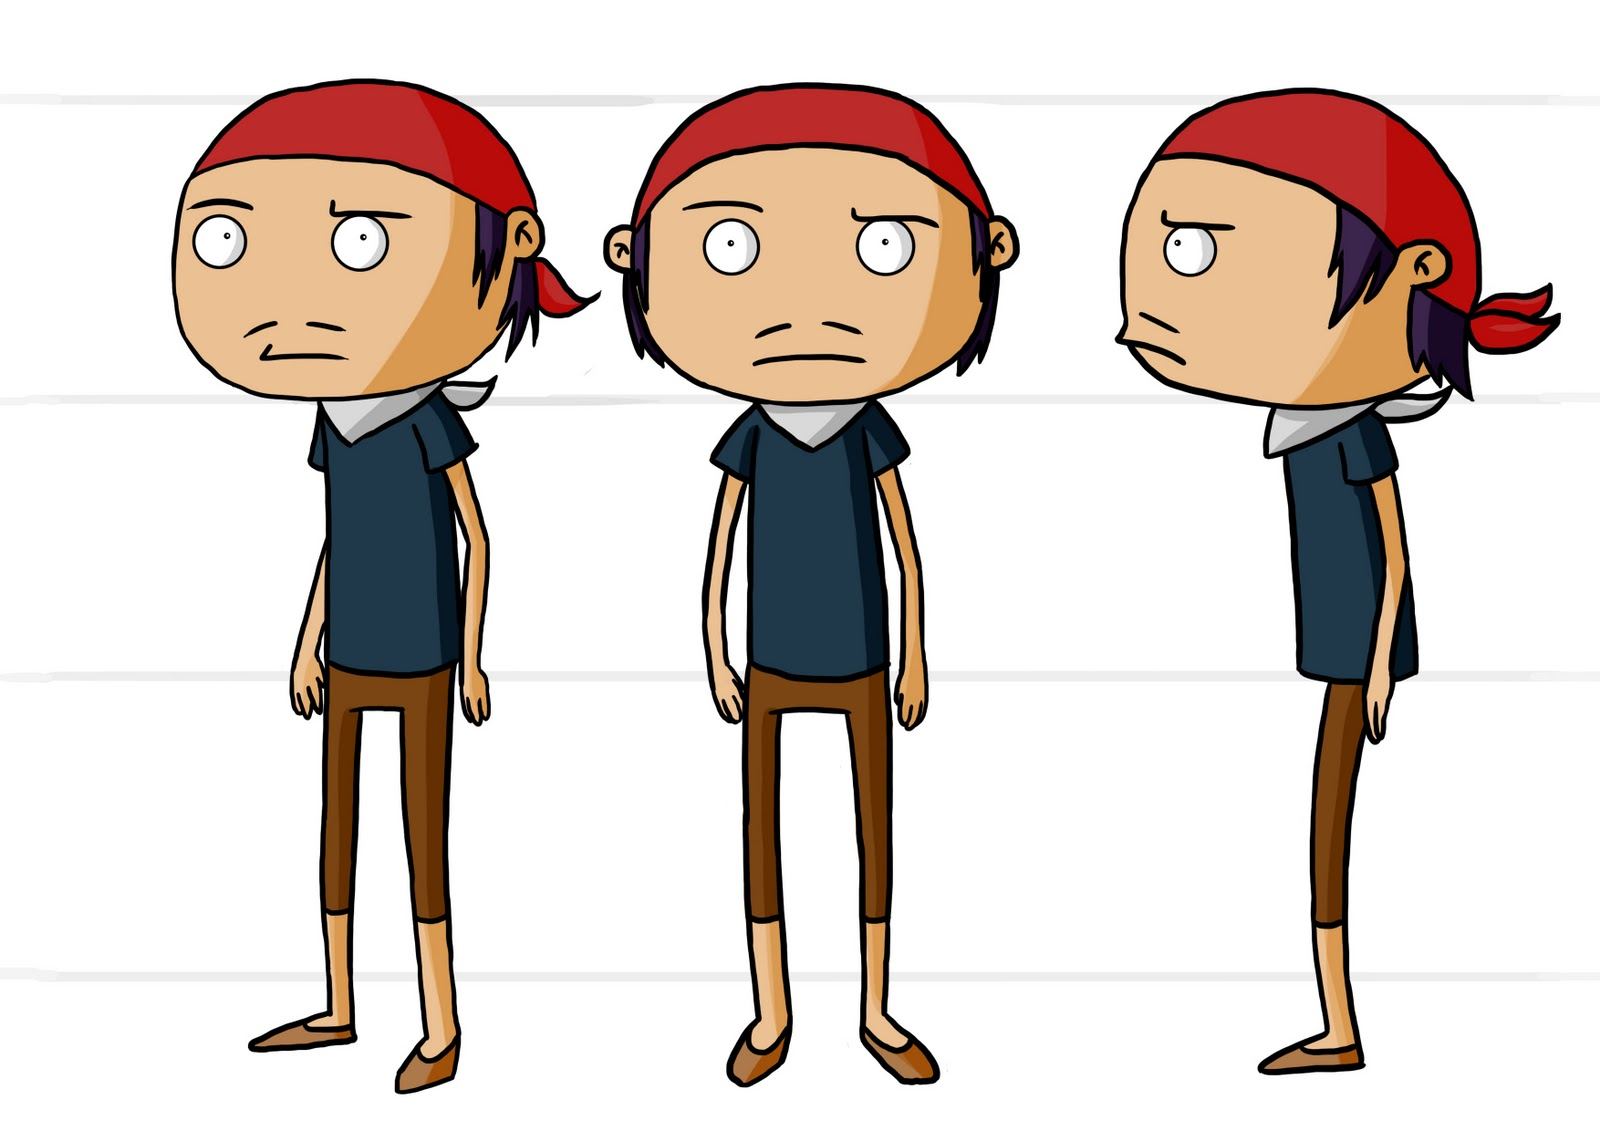 year 2 2d: post 4 - madagascar character designs